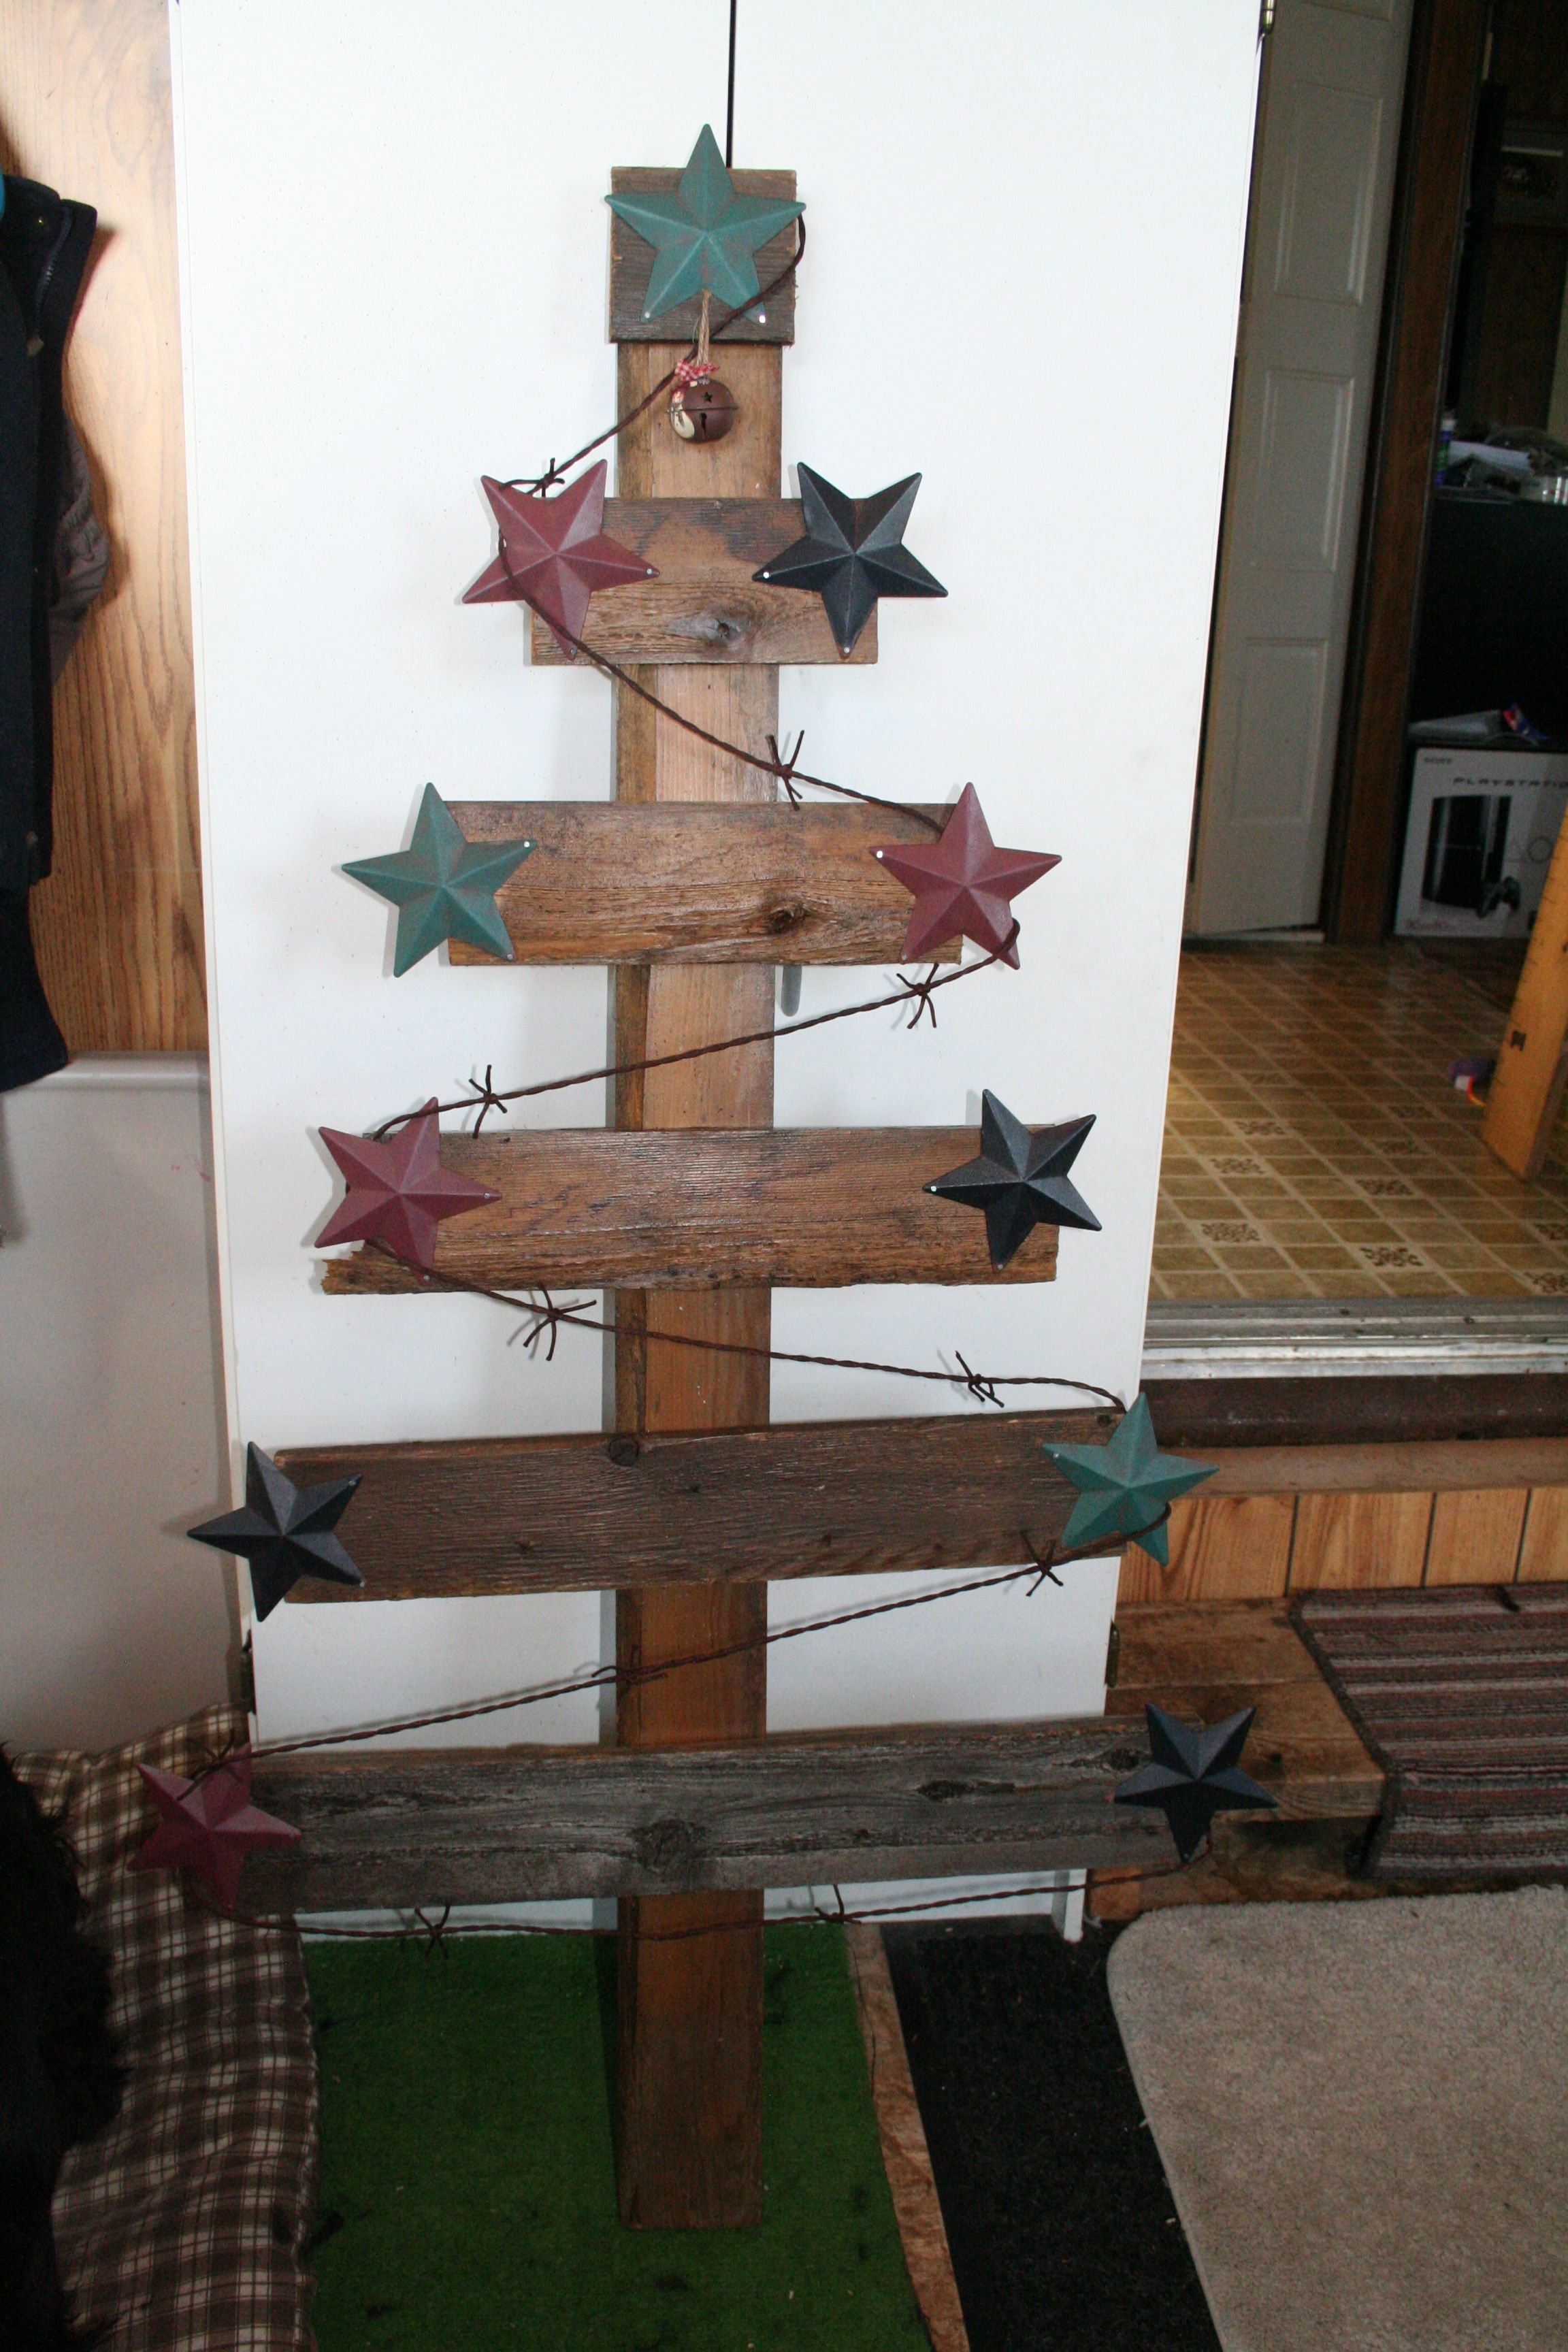 Used one x four boards cut at different lengths and screwed them to another 1 x 4. Added metal stars and rope barb wire. Hanger on back to hang on wall